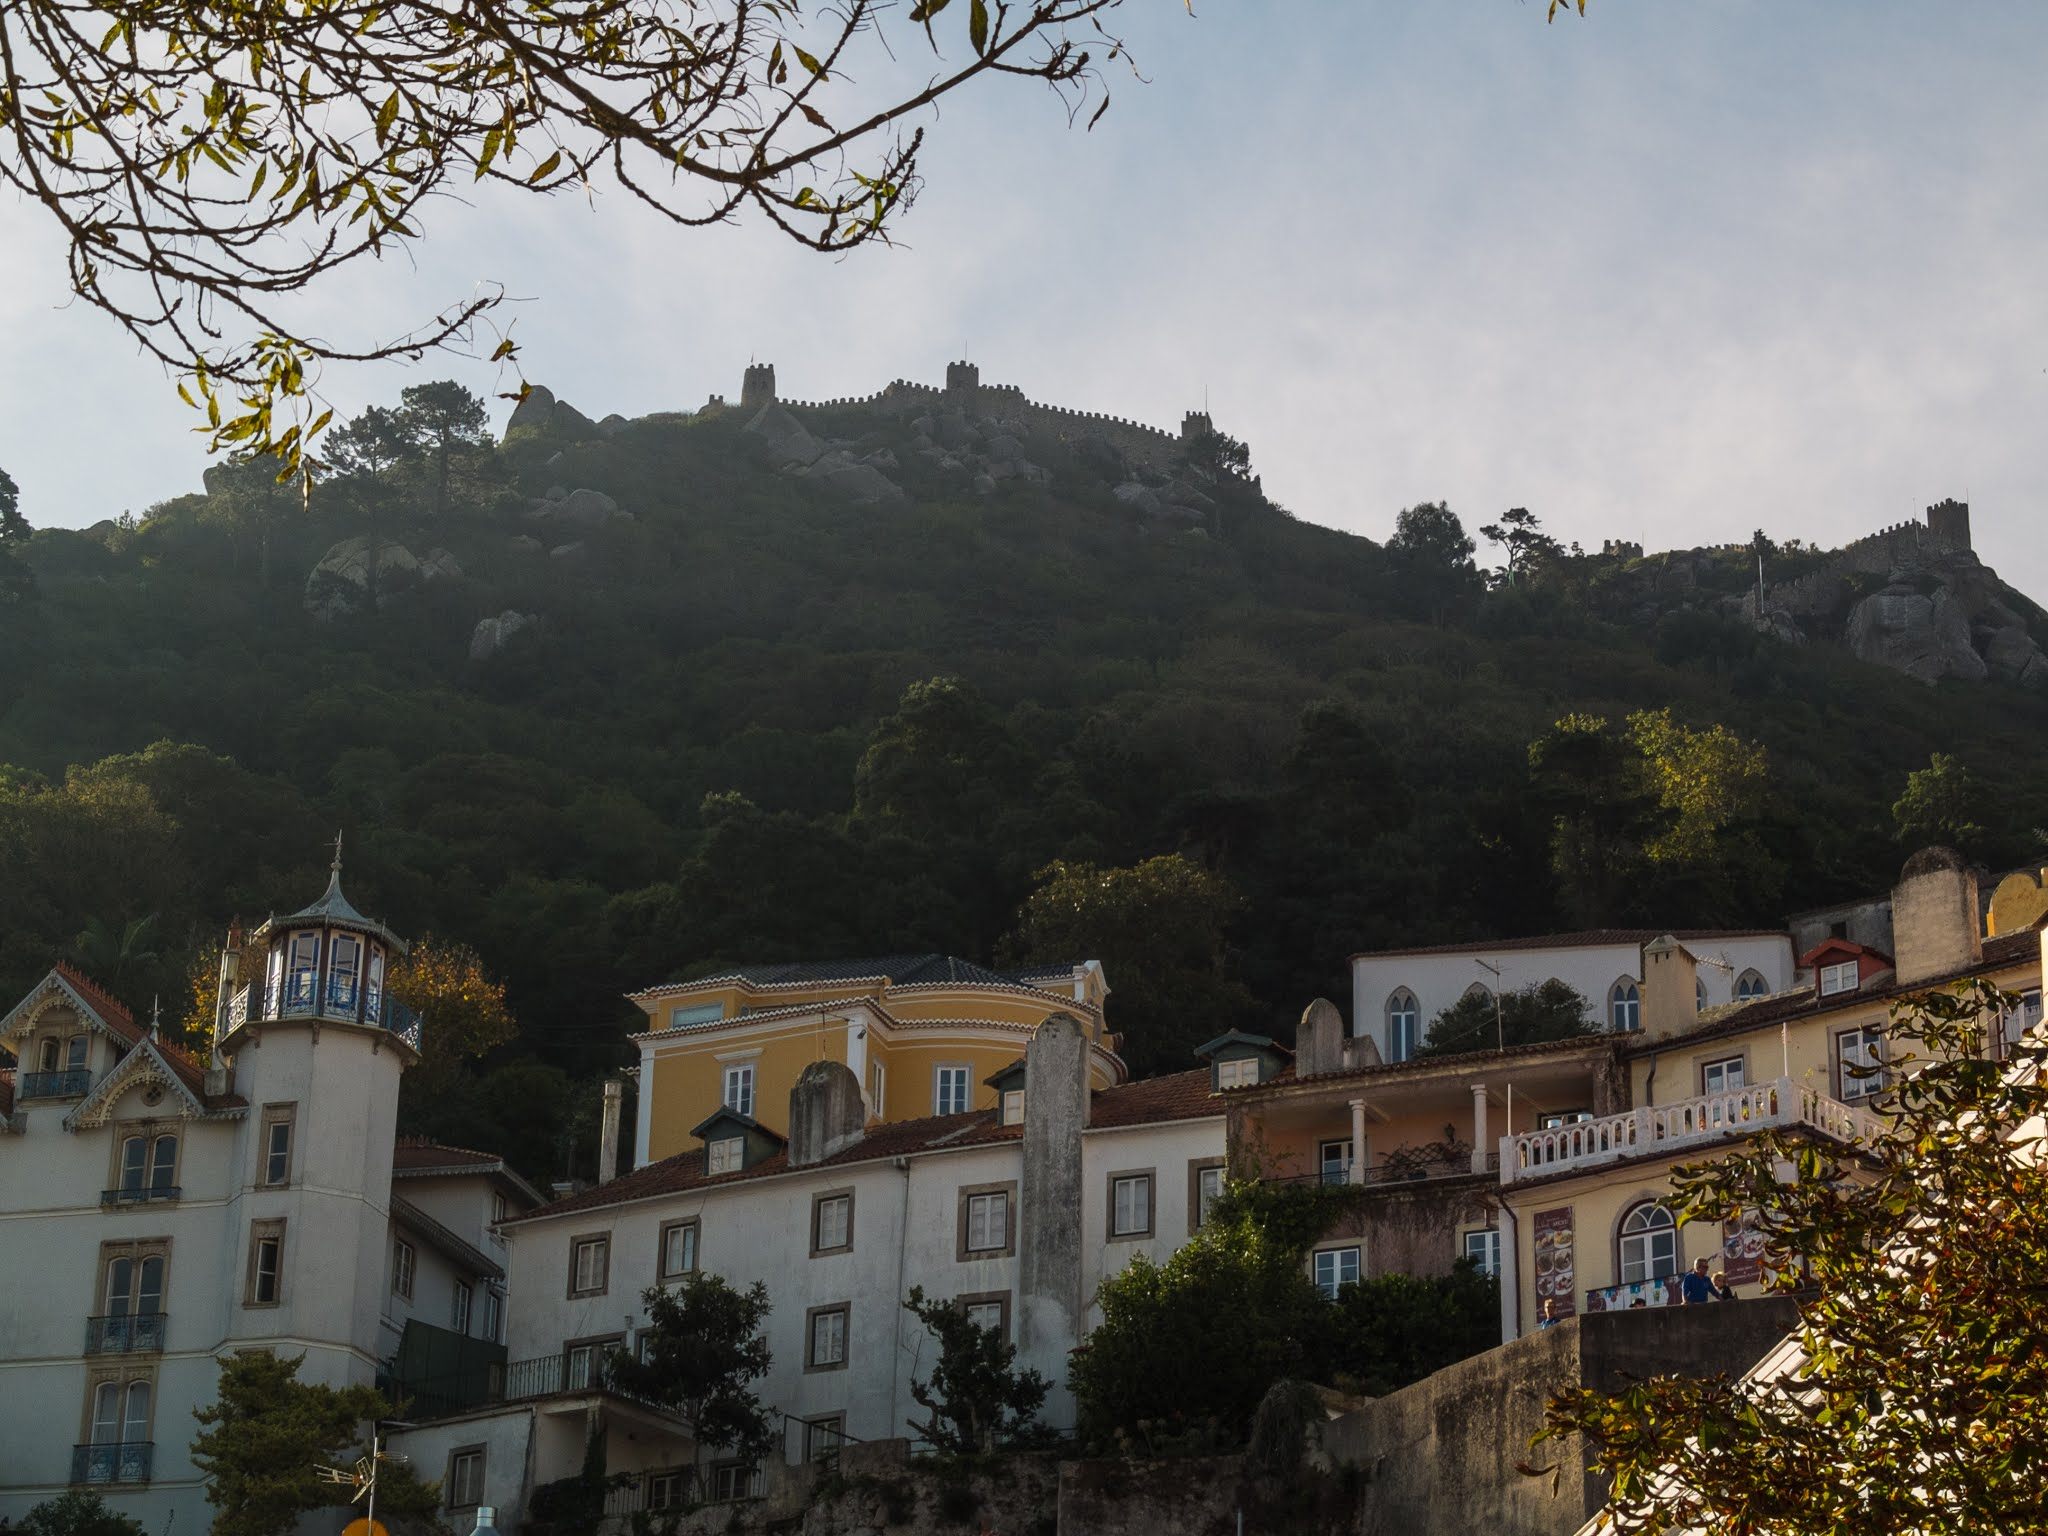 View of The Moor Castle on top of a mountain in Sintra, Portugal.